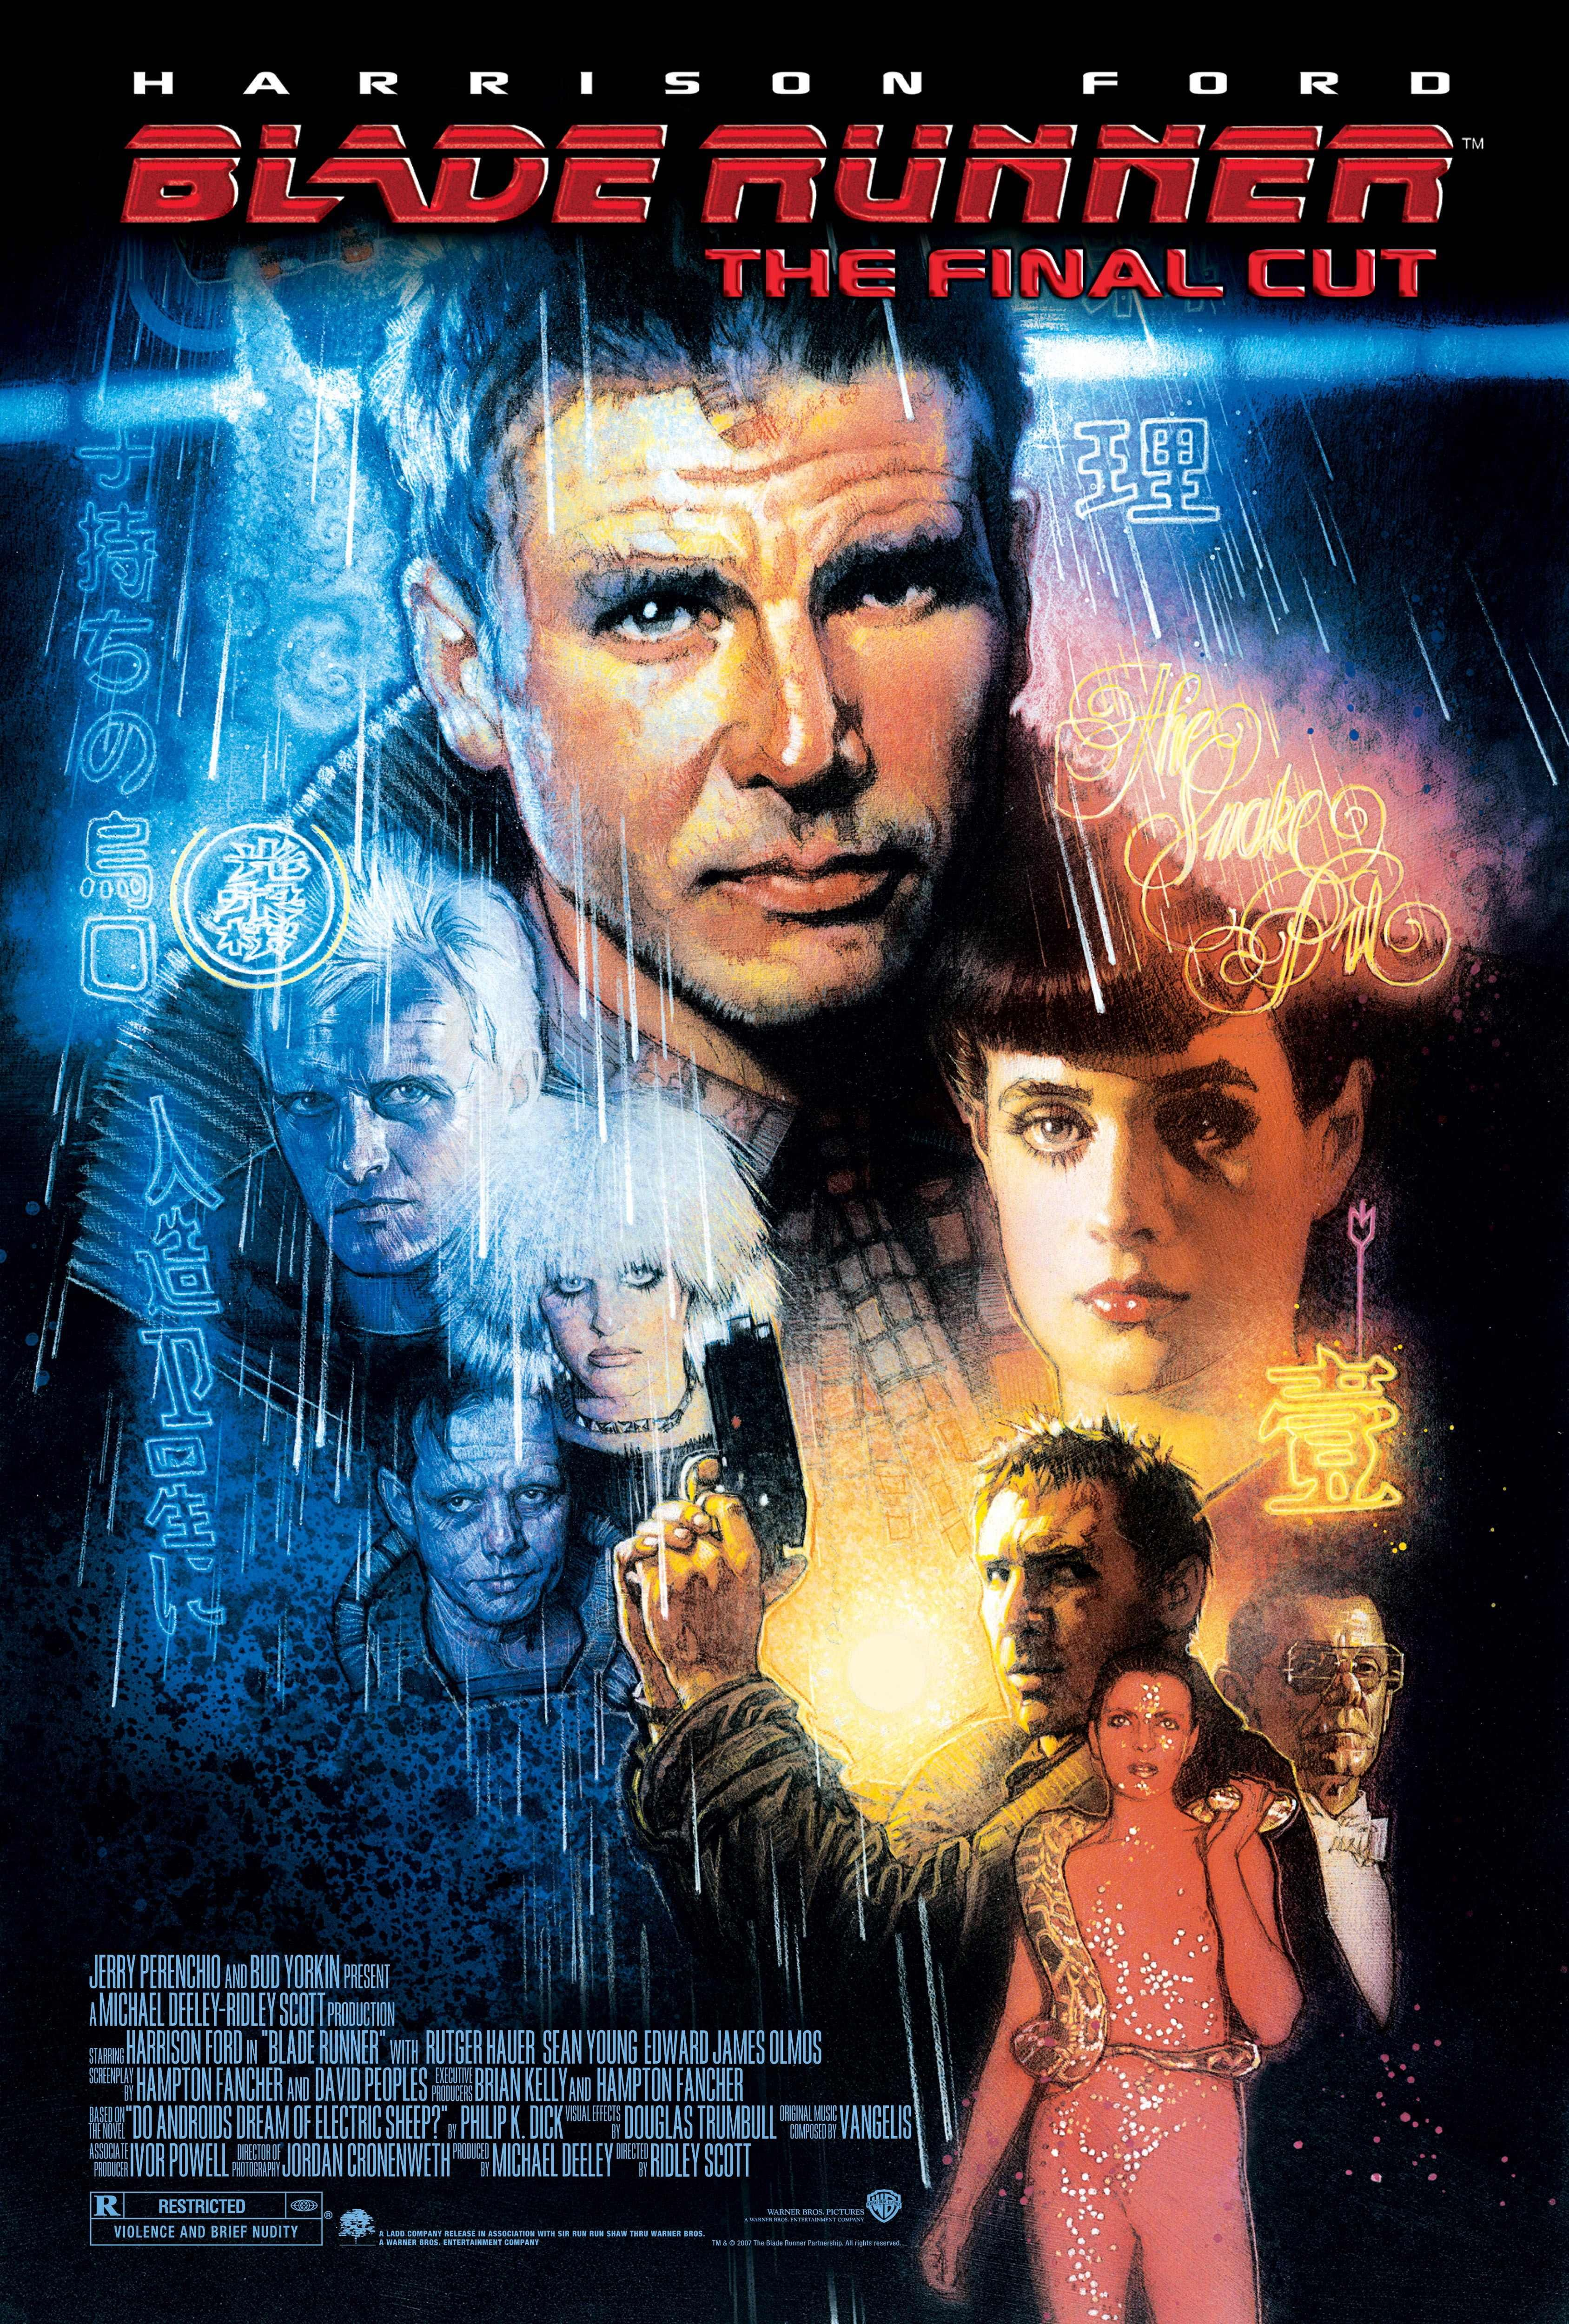 Pin By Eric Roche On Als Pinterest Blade Runner Movies And Short Circuit 27x40 Movie Poster 1986 Film Art Posters Original